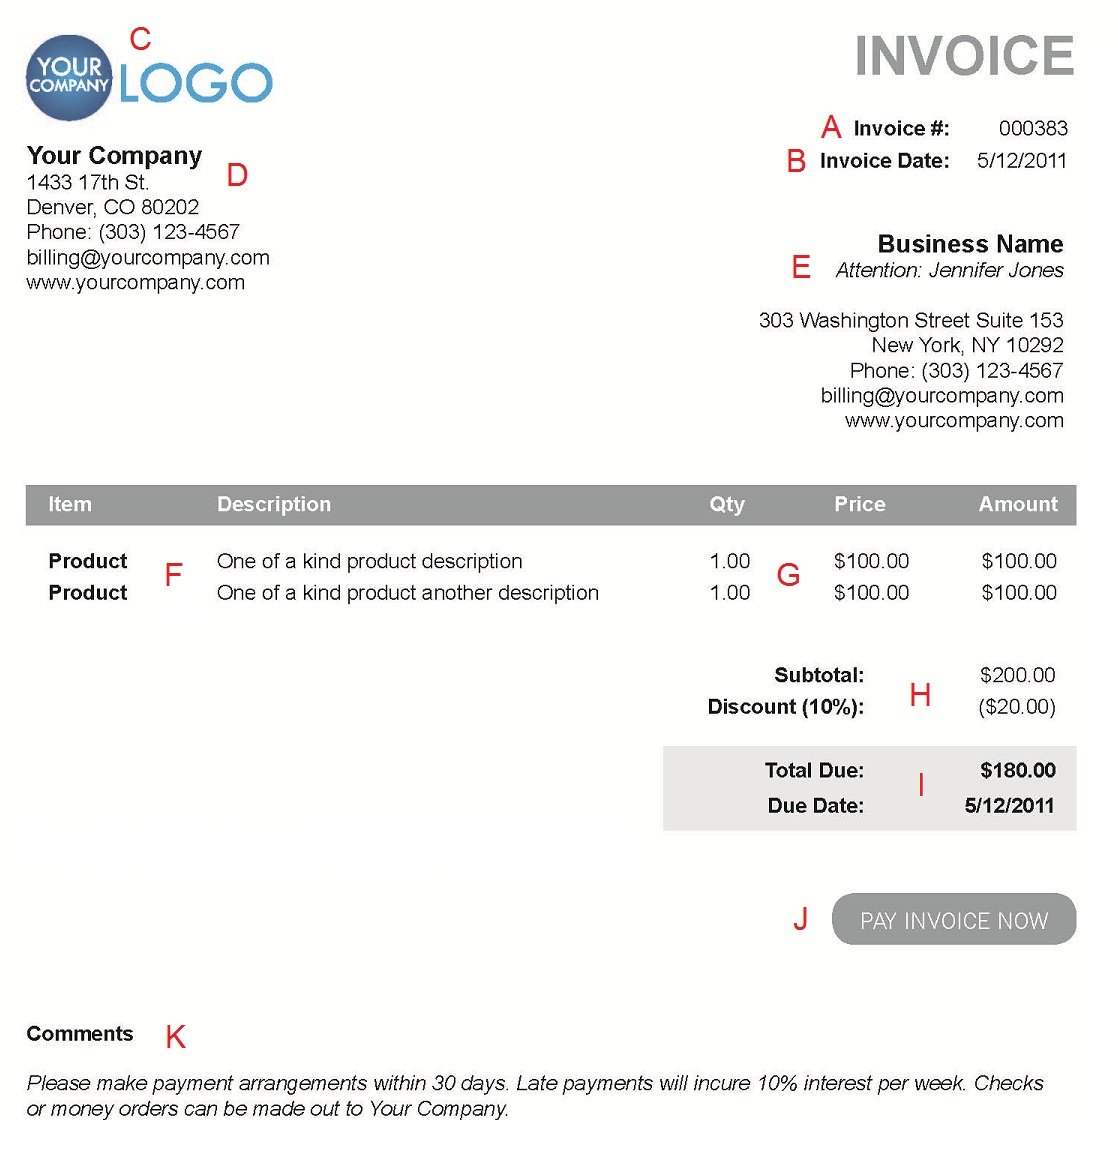 Ediblewildsus  Pleasing The  Different Sections Of An Electronic Payment Invoice With Entrancing A  With Astounding New Car Invoices Also Mazda Cx Invoice In Addition Numbers Invoice Template And Service Invoice Template Excel As Well As Sample Invoice Excel Additionally Fedex Commercial Invoice Form From Paysimplecom With Ediblewildsus  Entrancing The  Different Sections Of An Electronic Payment Invoice With Astounding A  And Pleasing New Car Invoices Also Mazda Cx Invoice In Addition Numbers Invoice Template From Paysimplecom